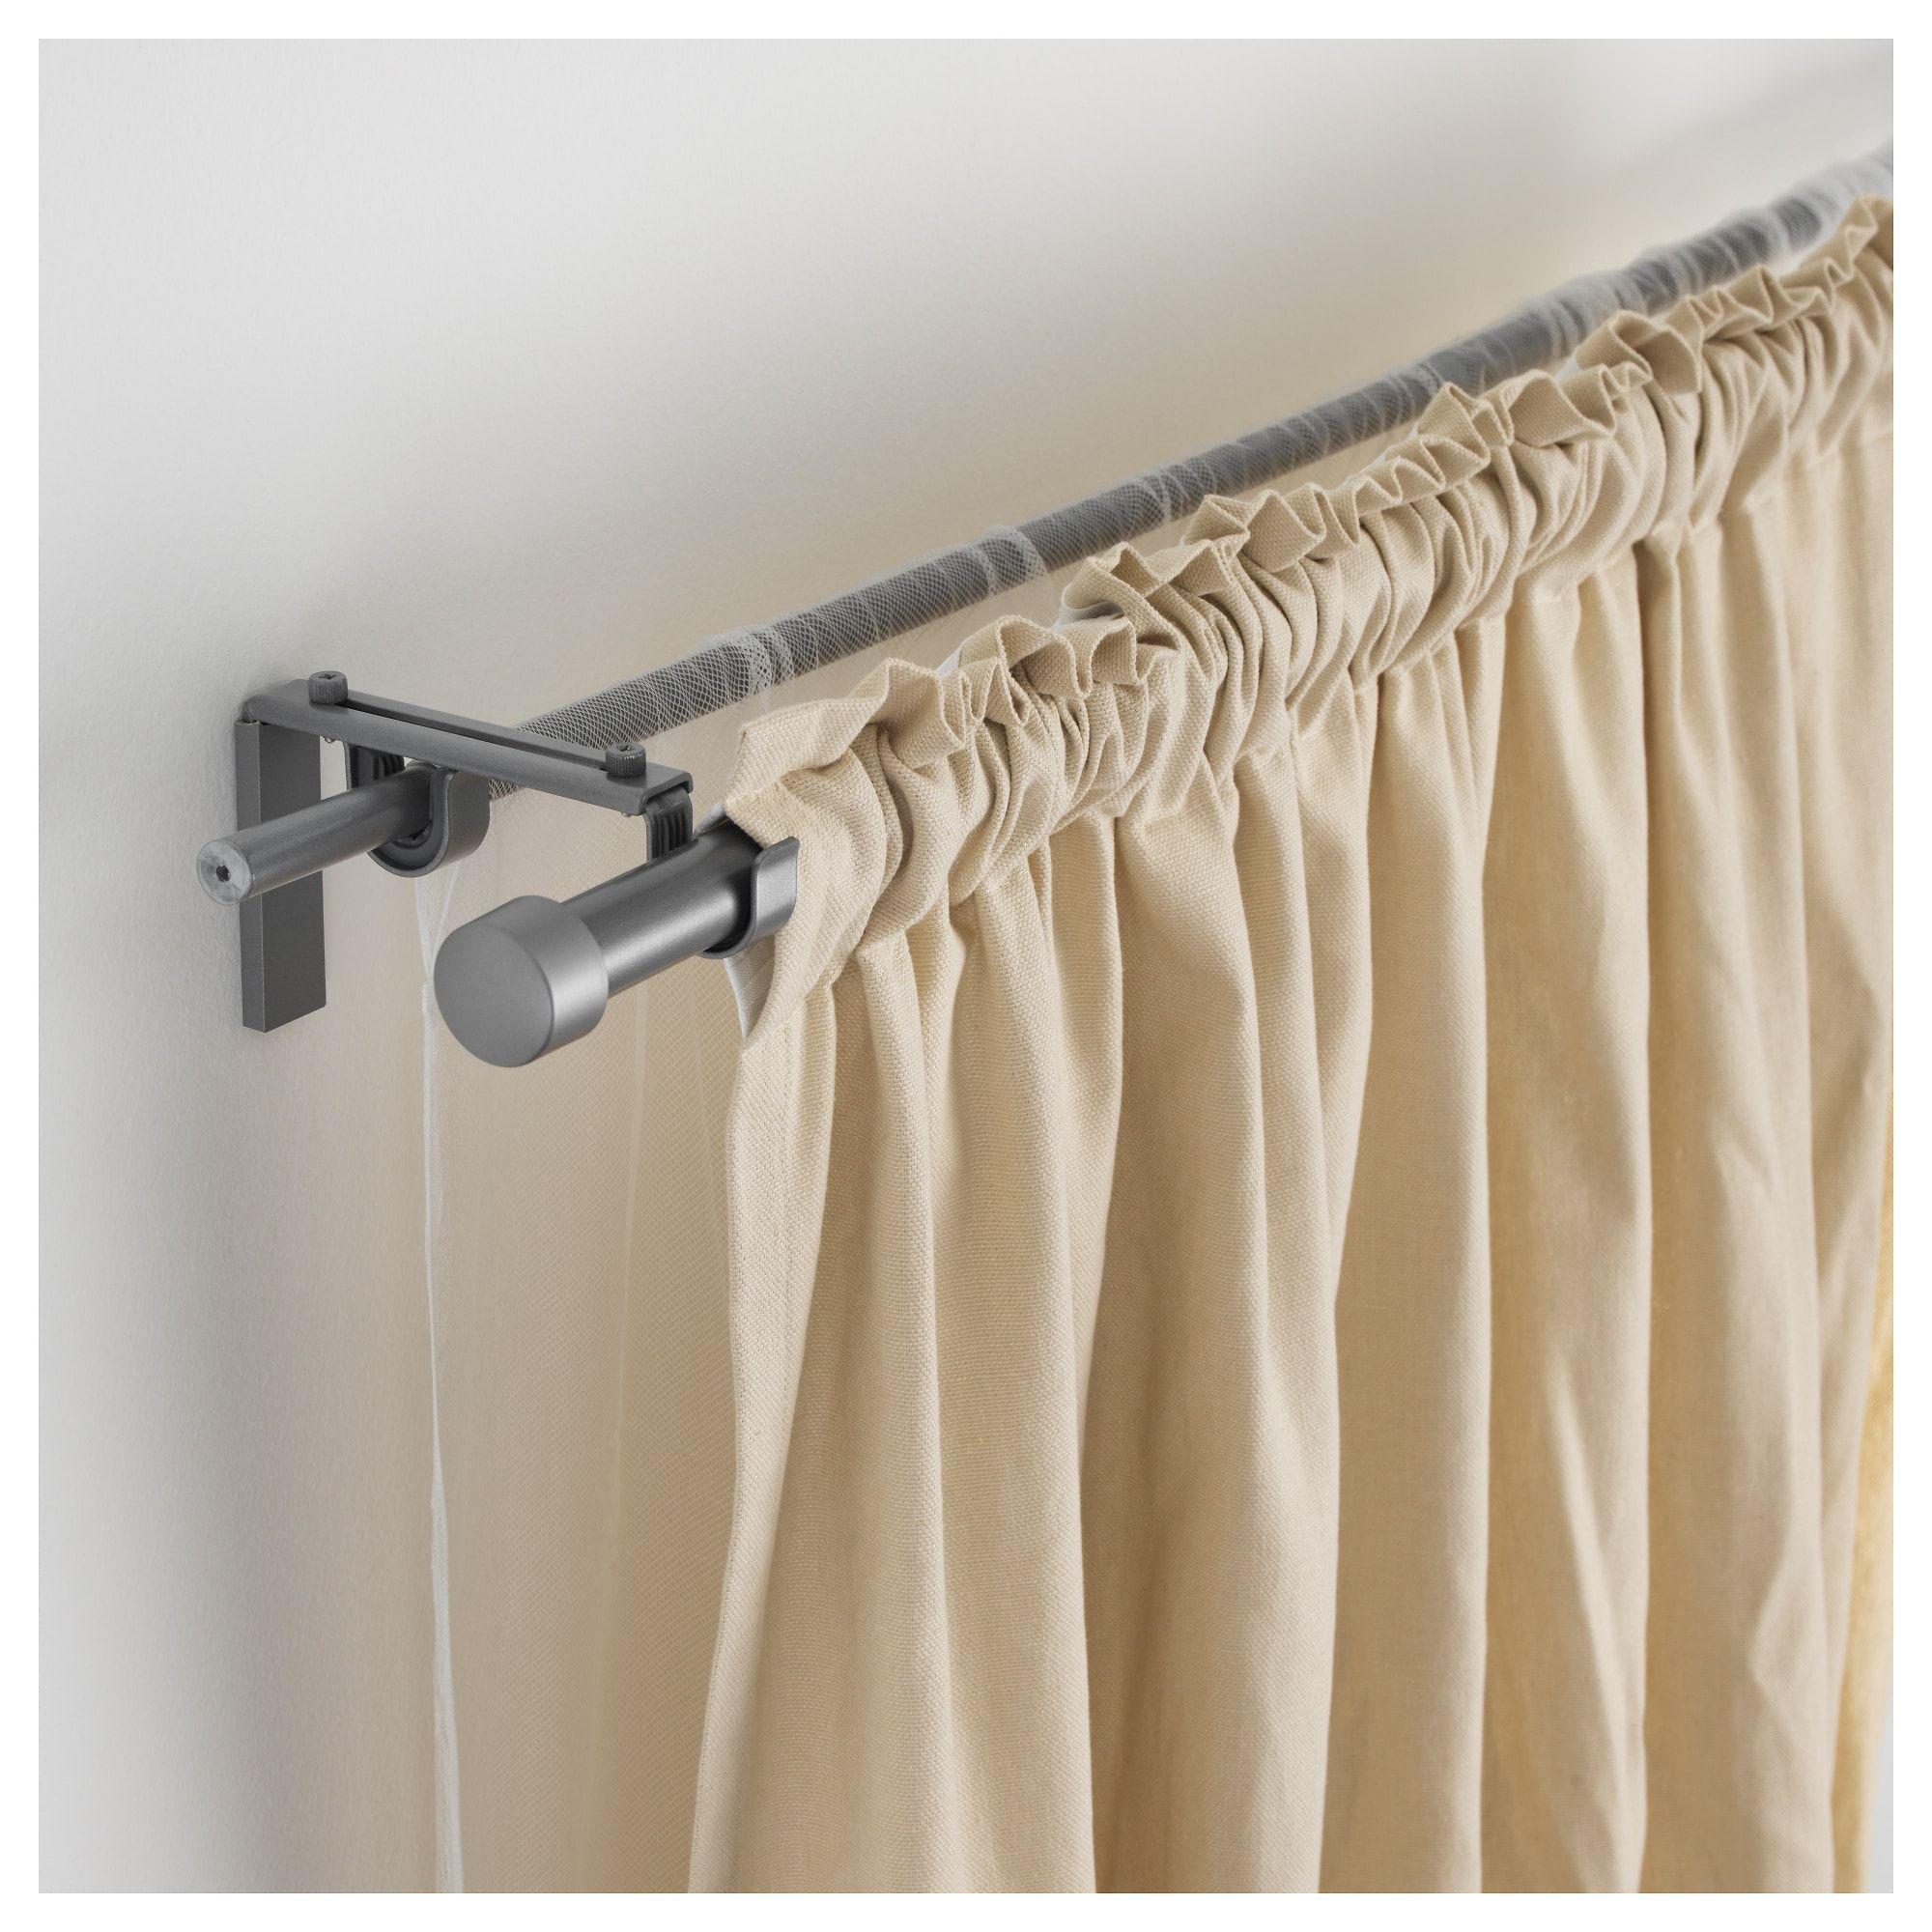 Ikea Racka Hugad Silver Color Double Curtain Rod Combination